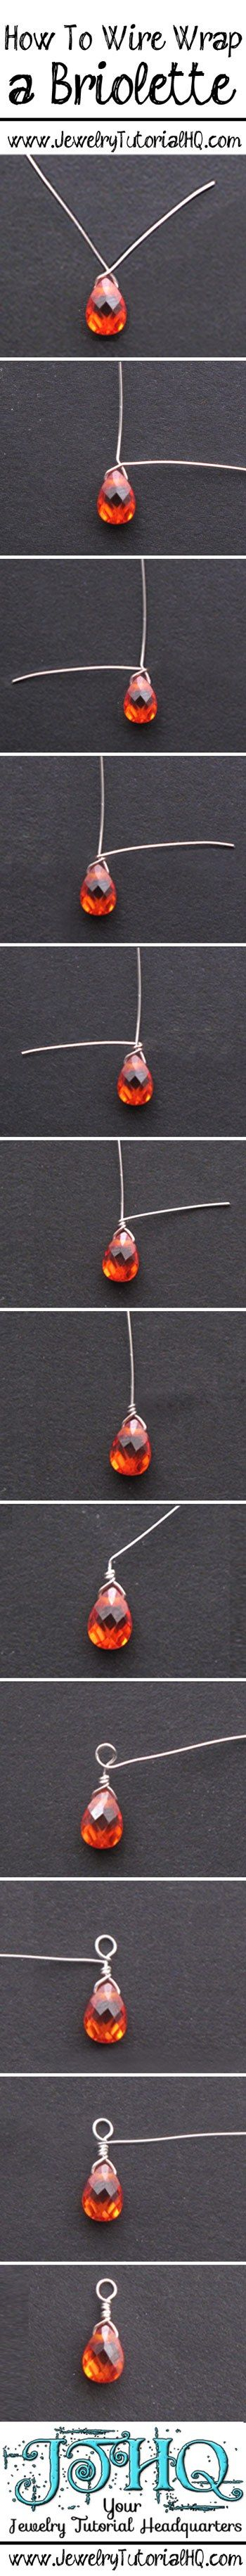 how to wire wrap a briolette step by step